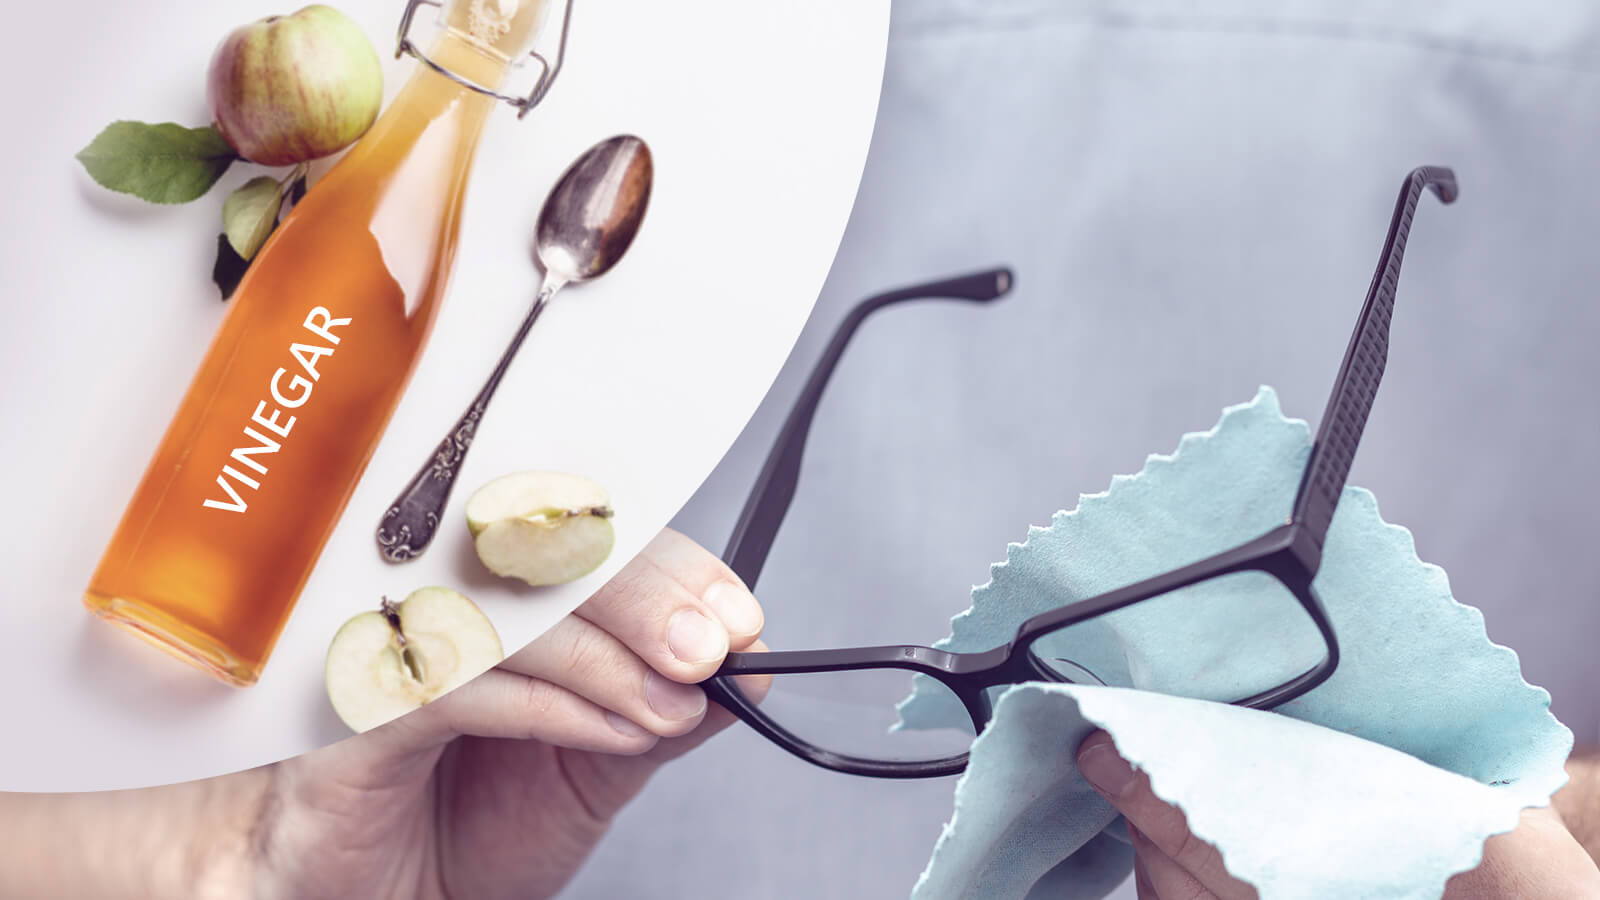 How to clean glasses with vinegar